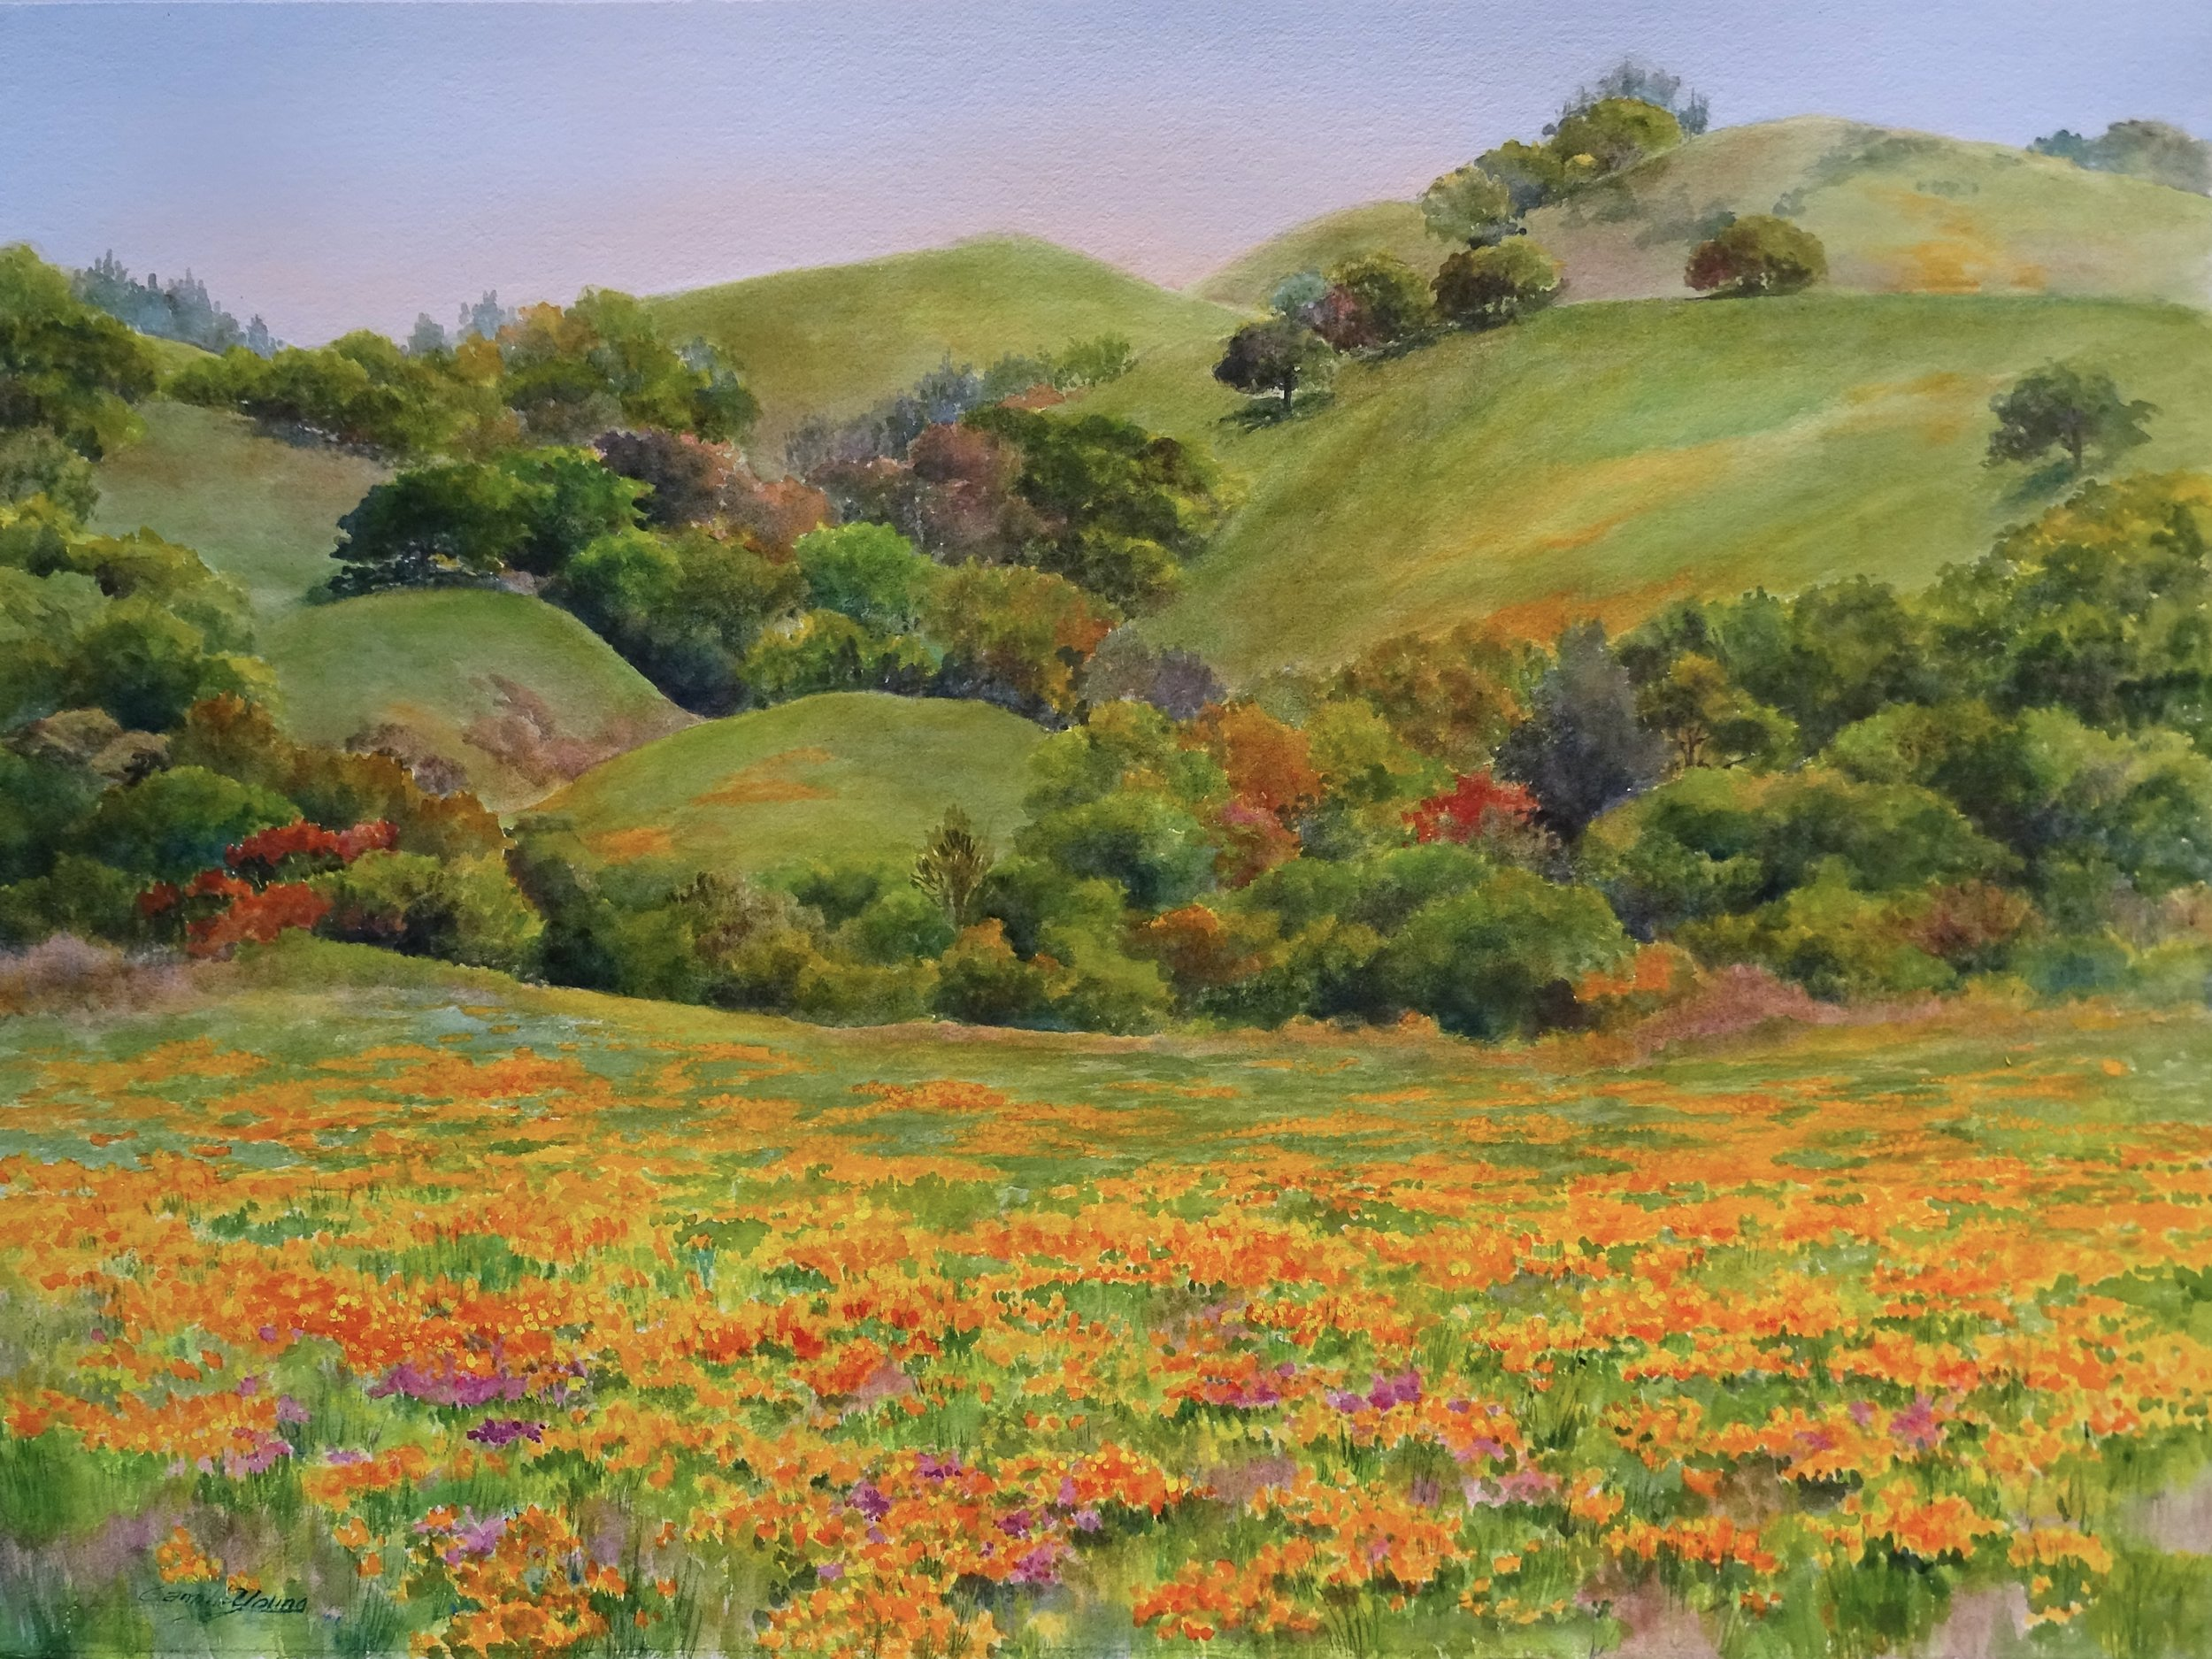 Mt. Diablo Poppies   More Info →